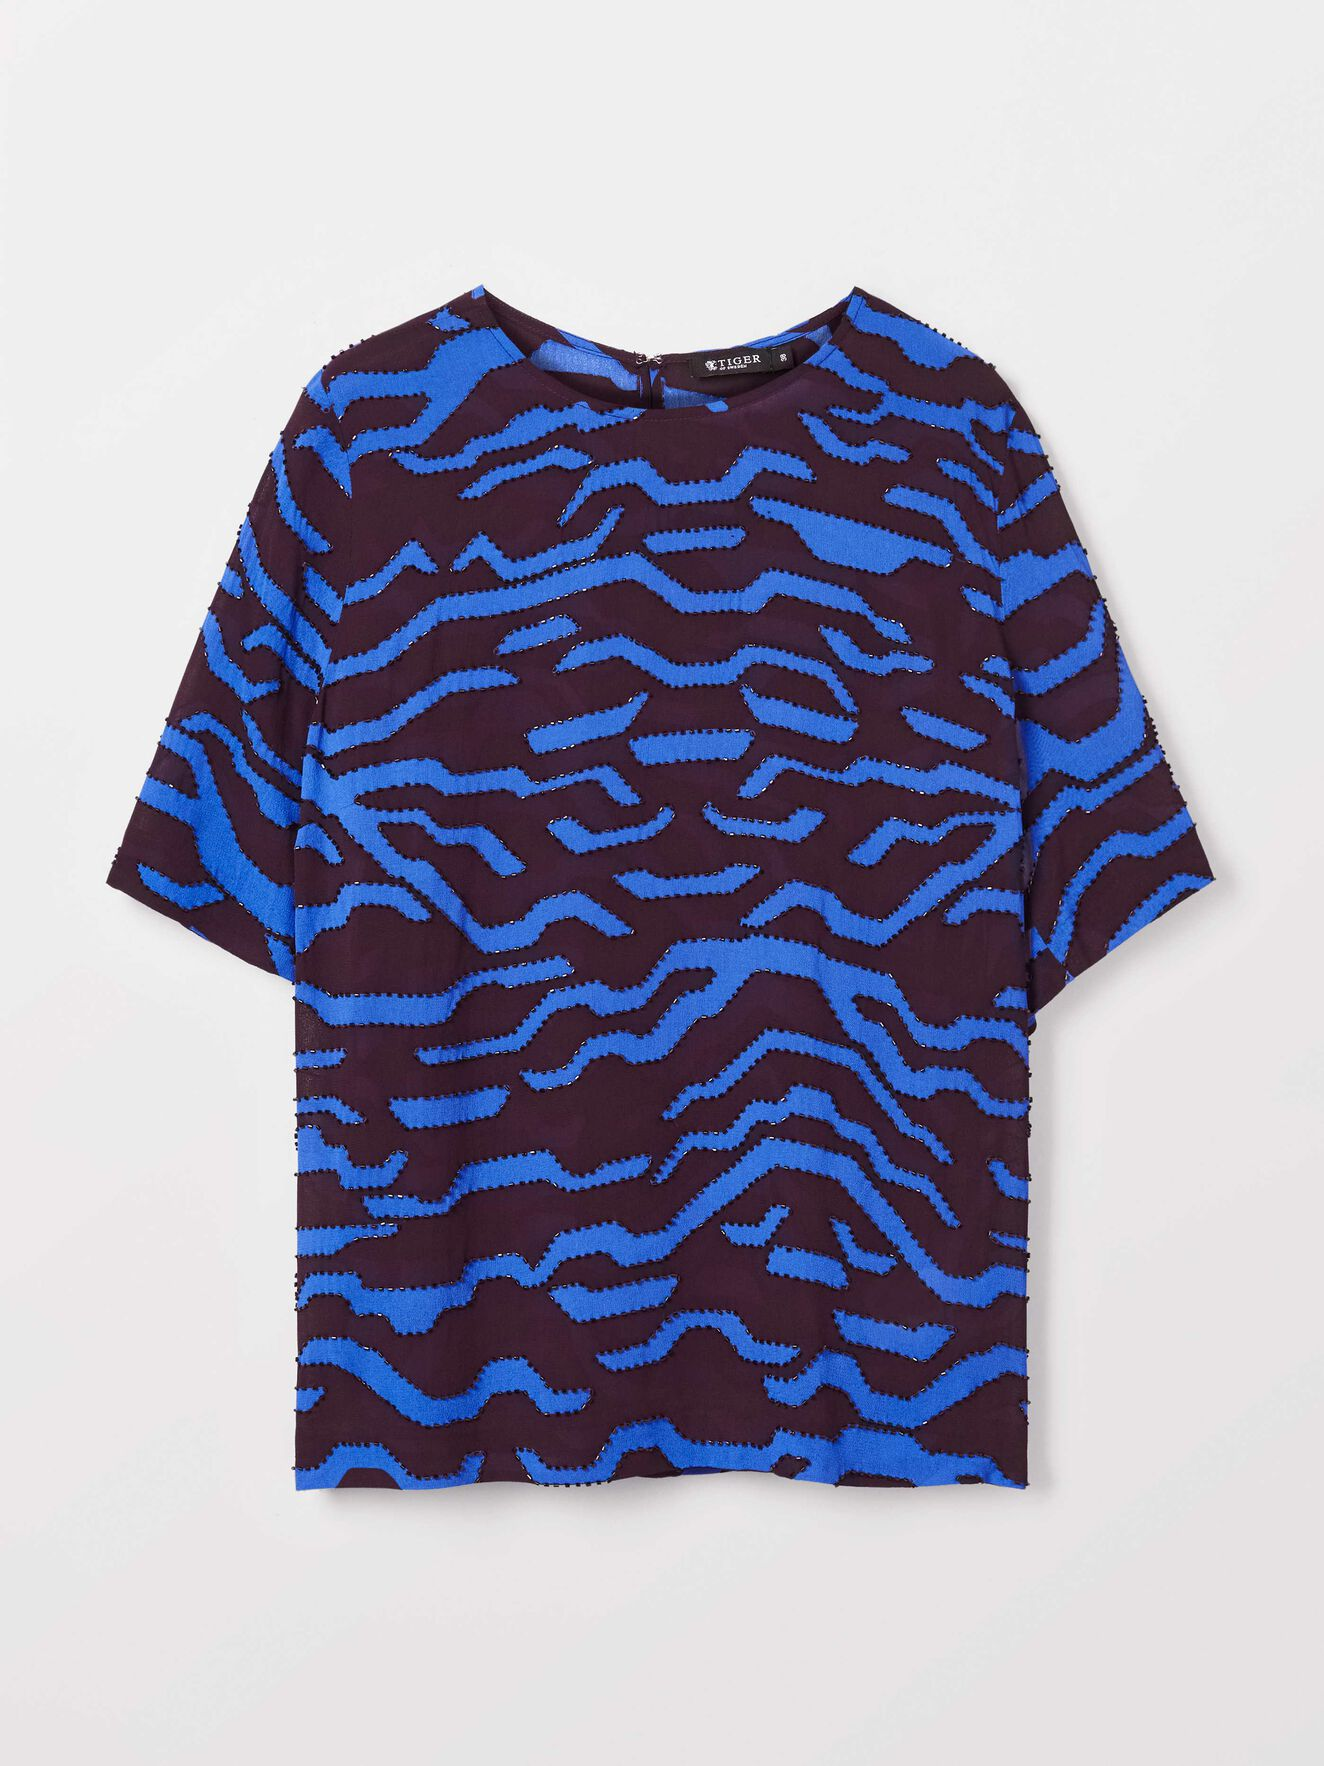 Jordsta P Top in ARTWORK from Tiger of Sweden